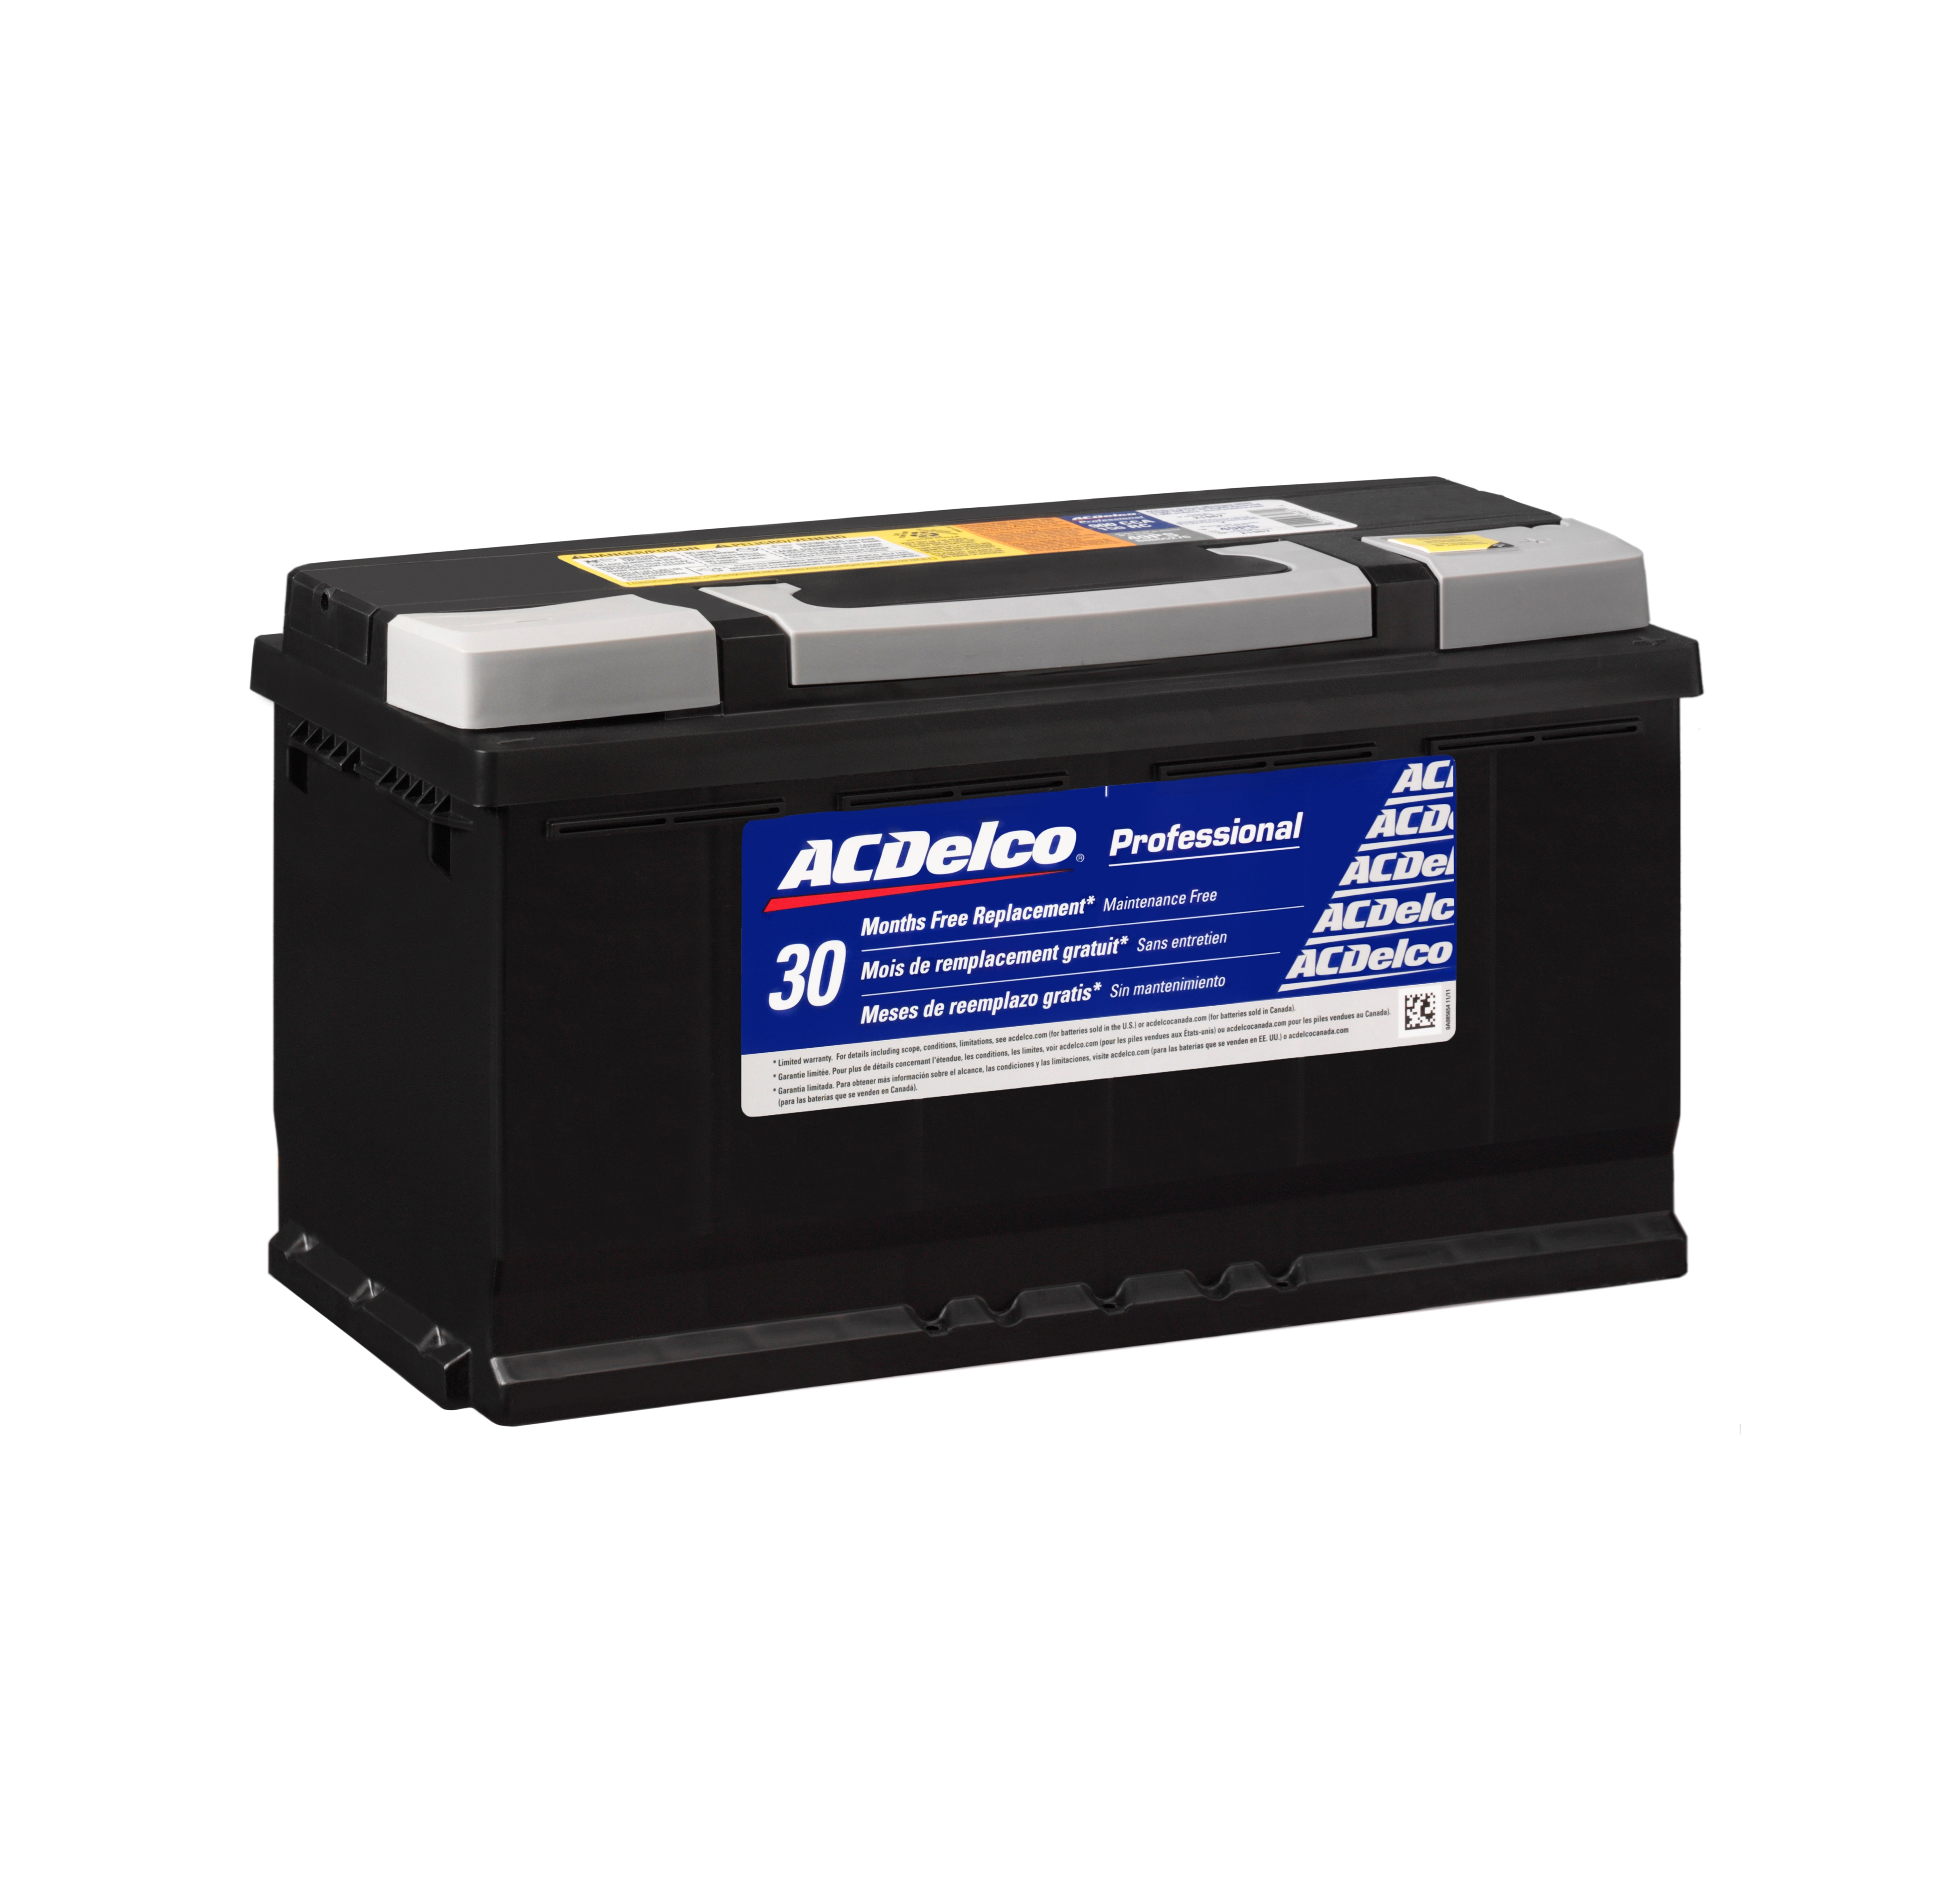 ACDELCO PROFESSIONAL - 30 Month Free Replacement Battery - DCC 49PS